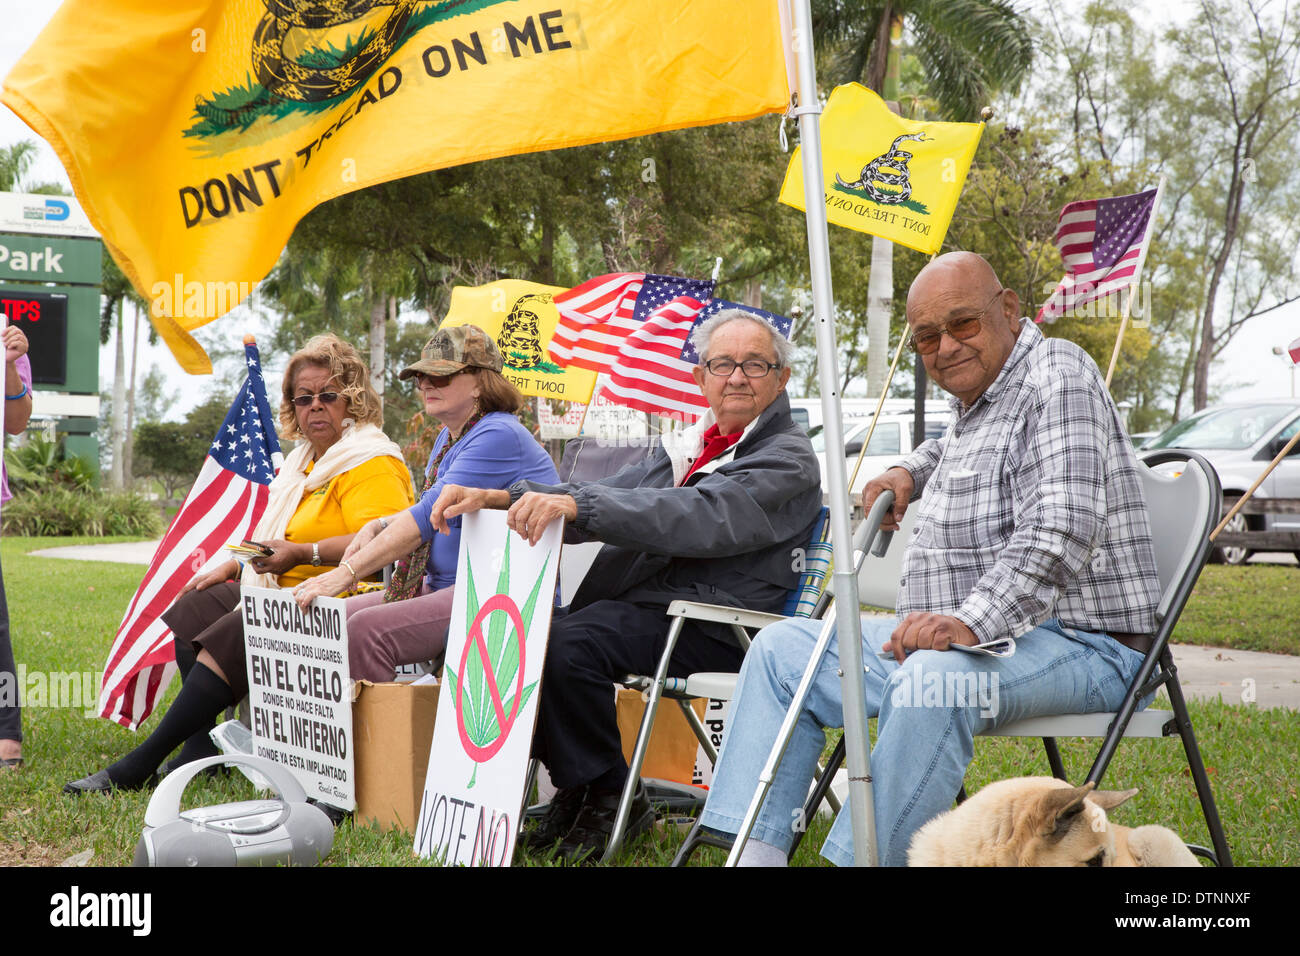 Miami, Florida - Cuban exiles, members of the Tea Party, rally on a variety of issues. Stock Photo